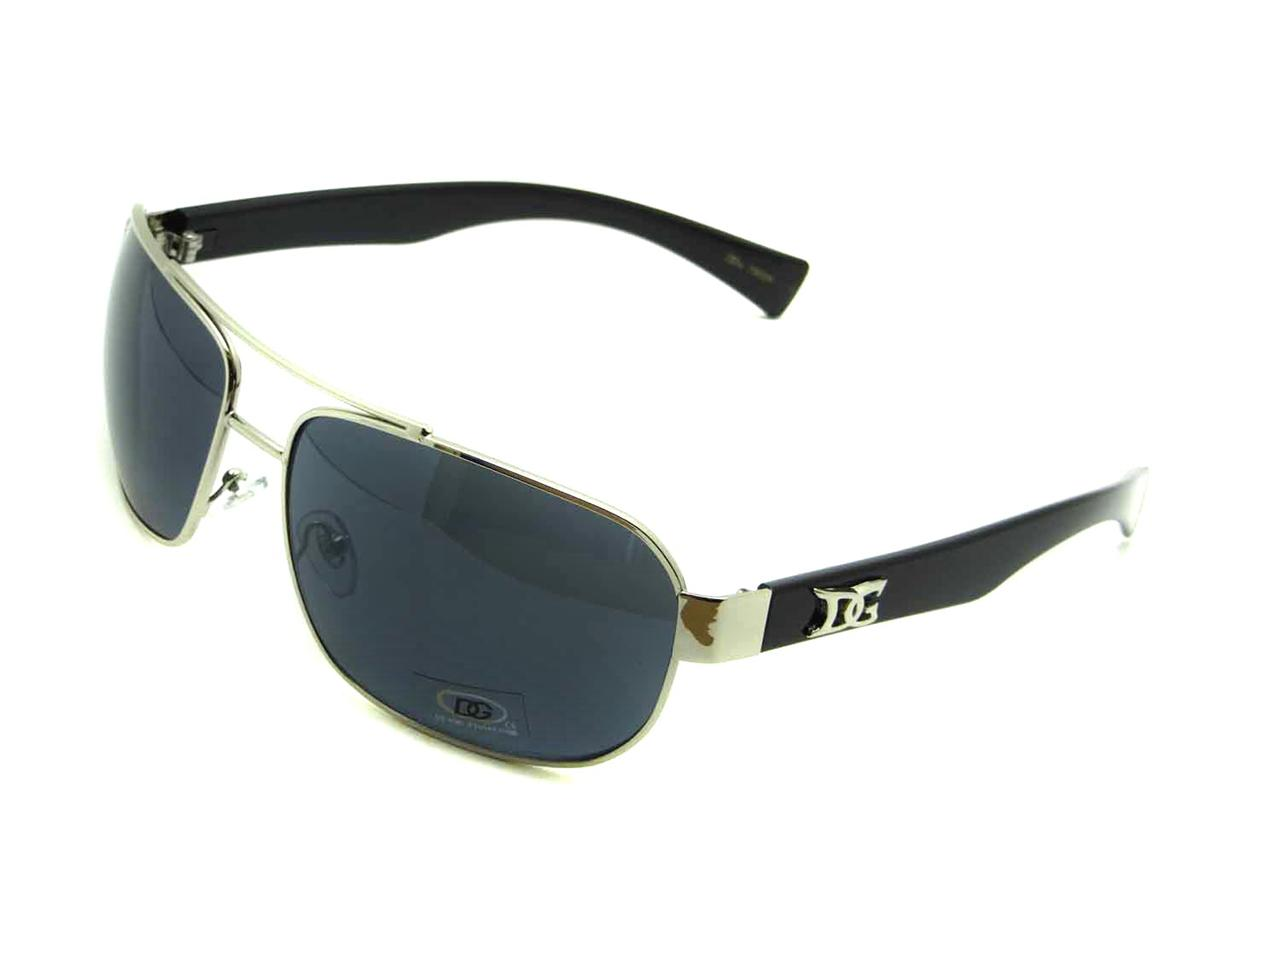 ae22a866ef Dg Eyewear Aviator Sunglasses - Psychopraticienne Bordeaux